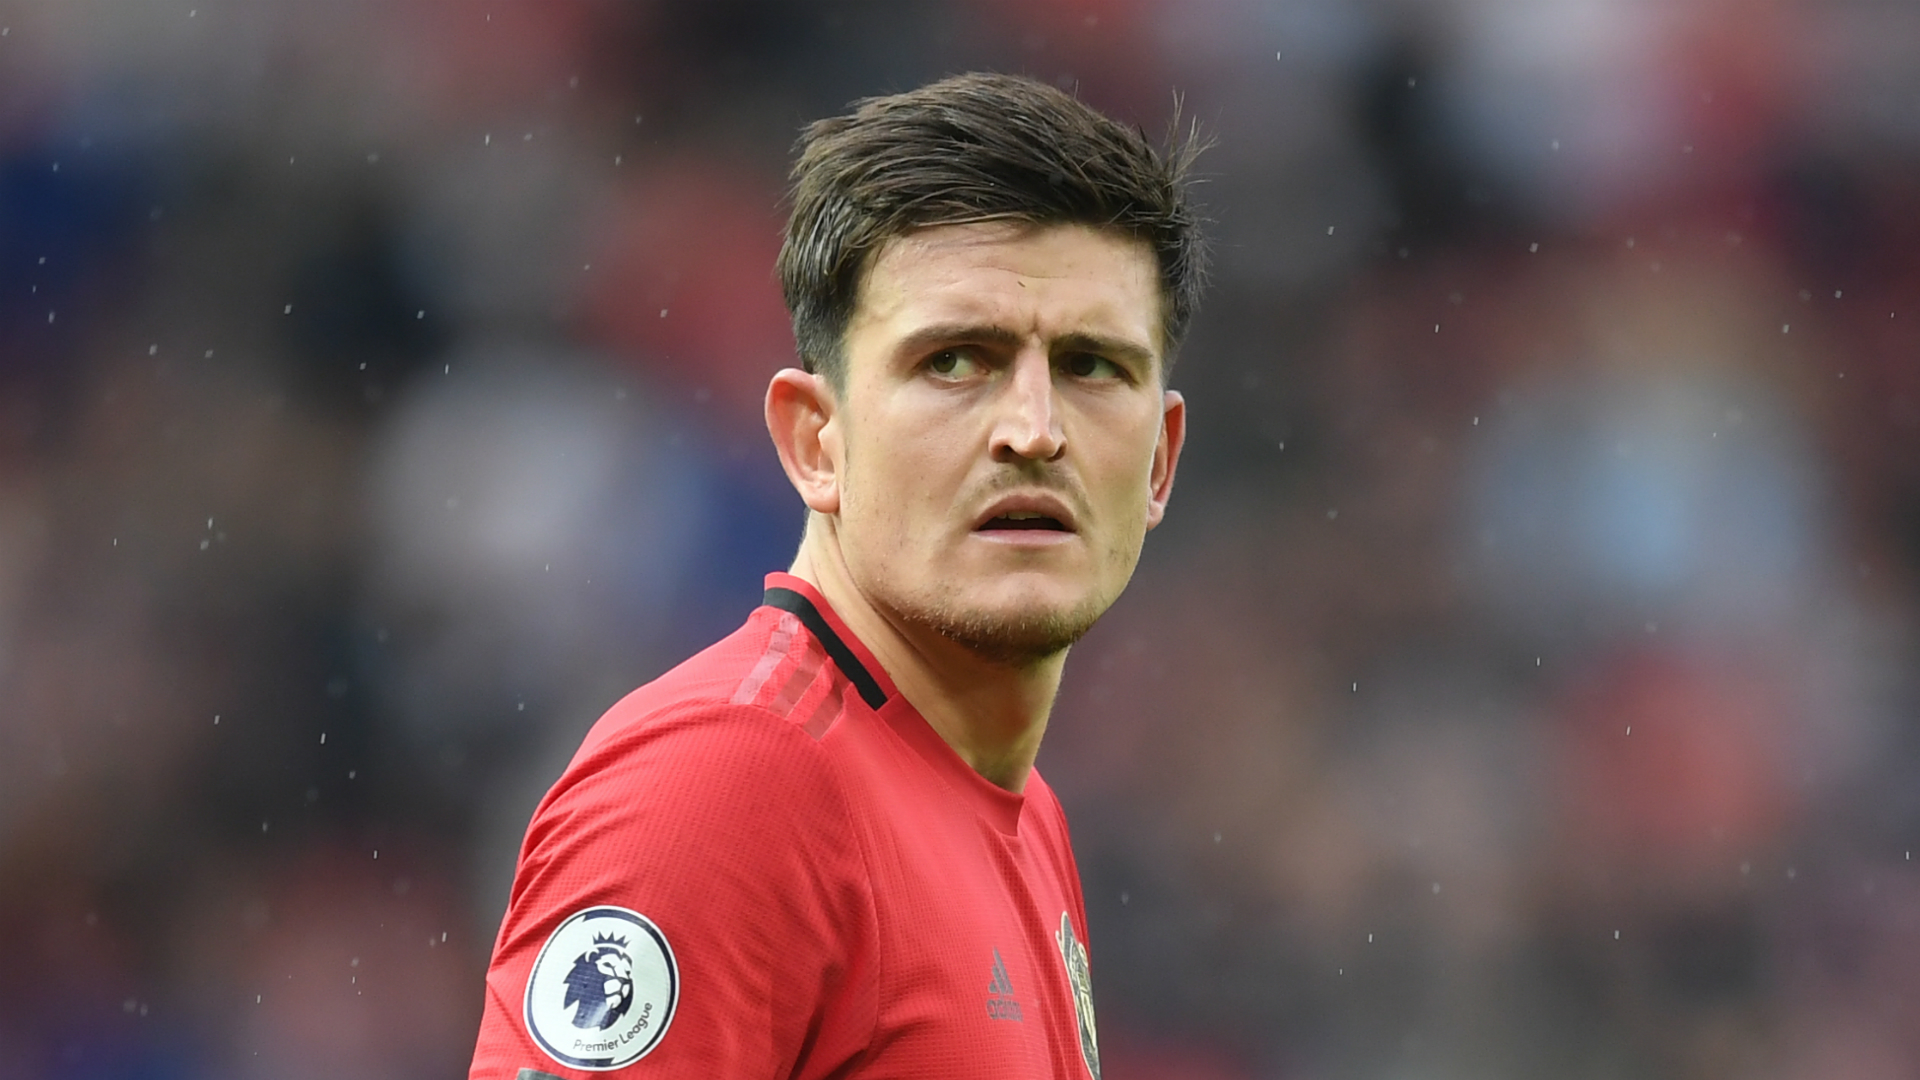 Solskjaer impressed by Maguire's impact at Manchester United on and off the field